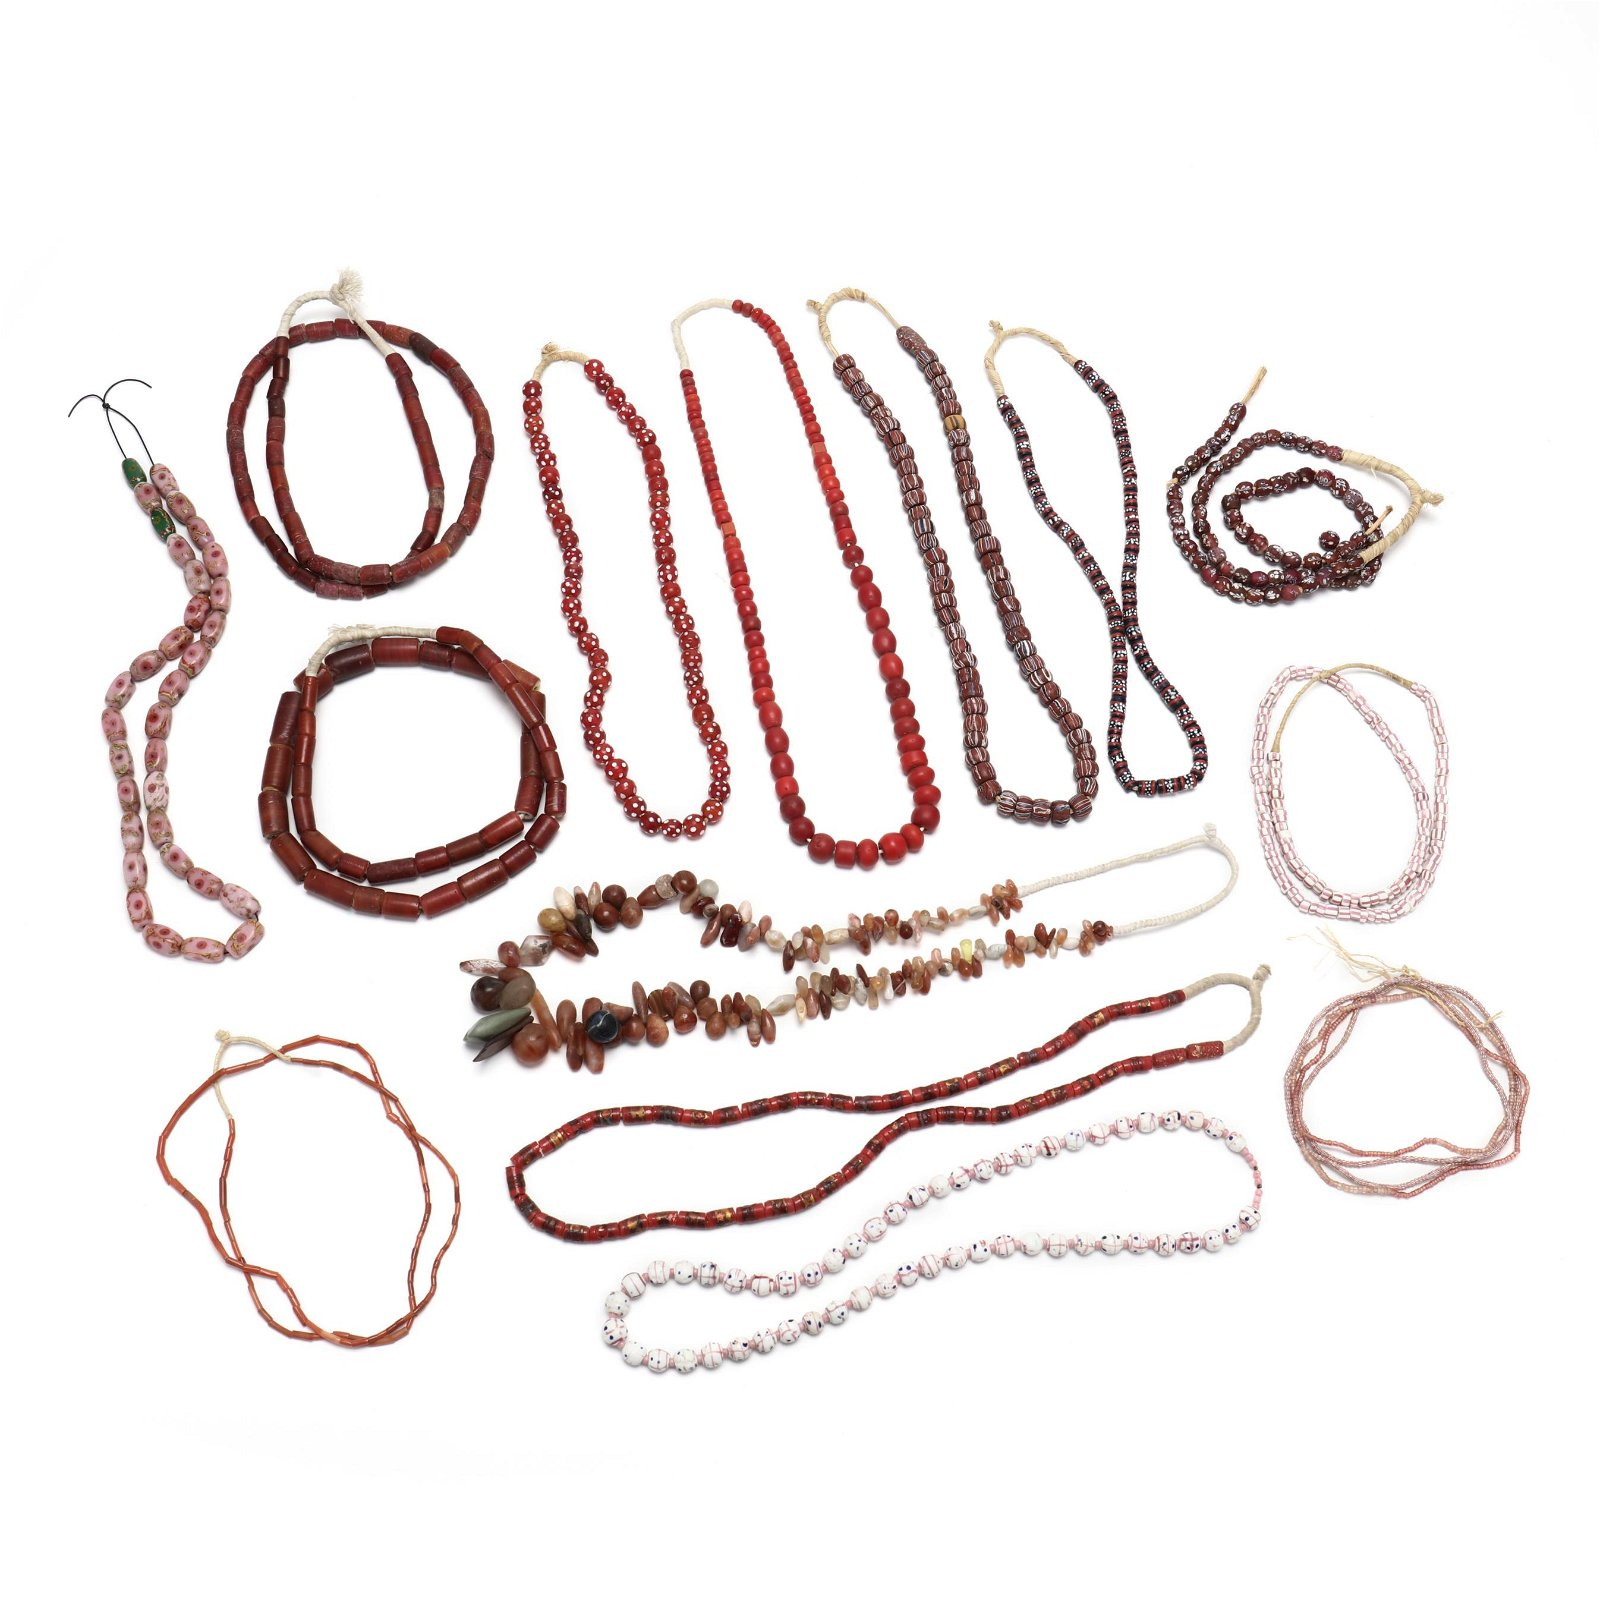 Group of African Trade Bead Necklaces